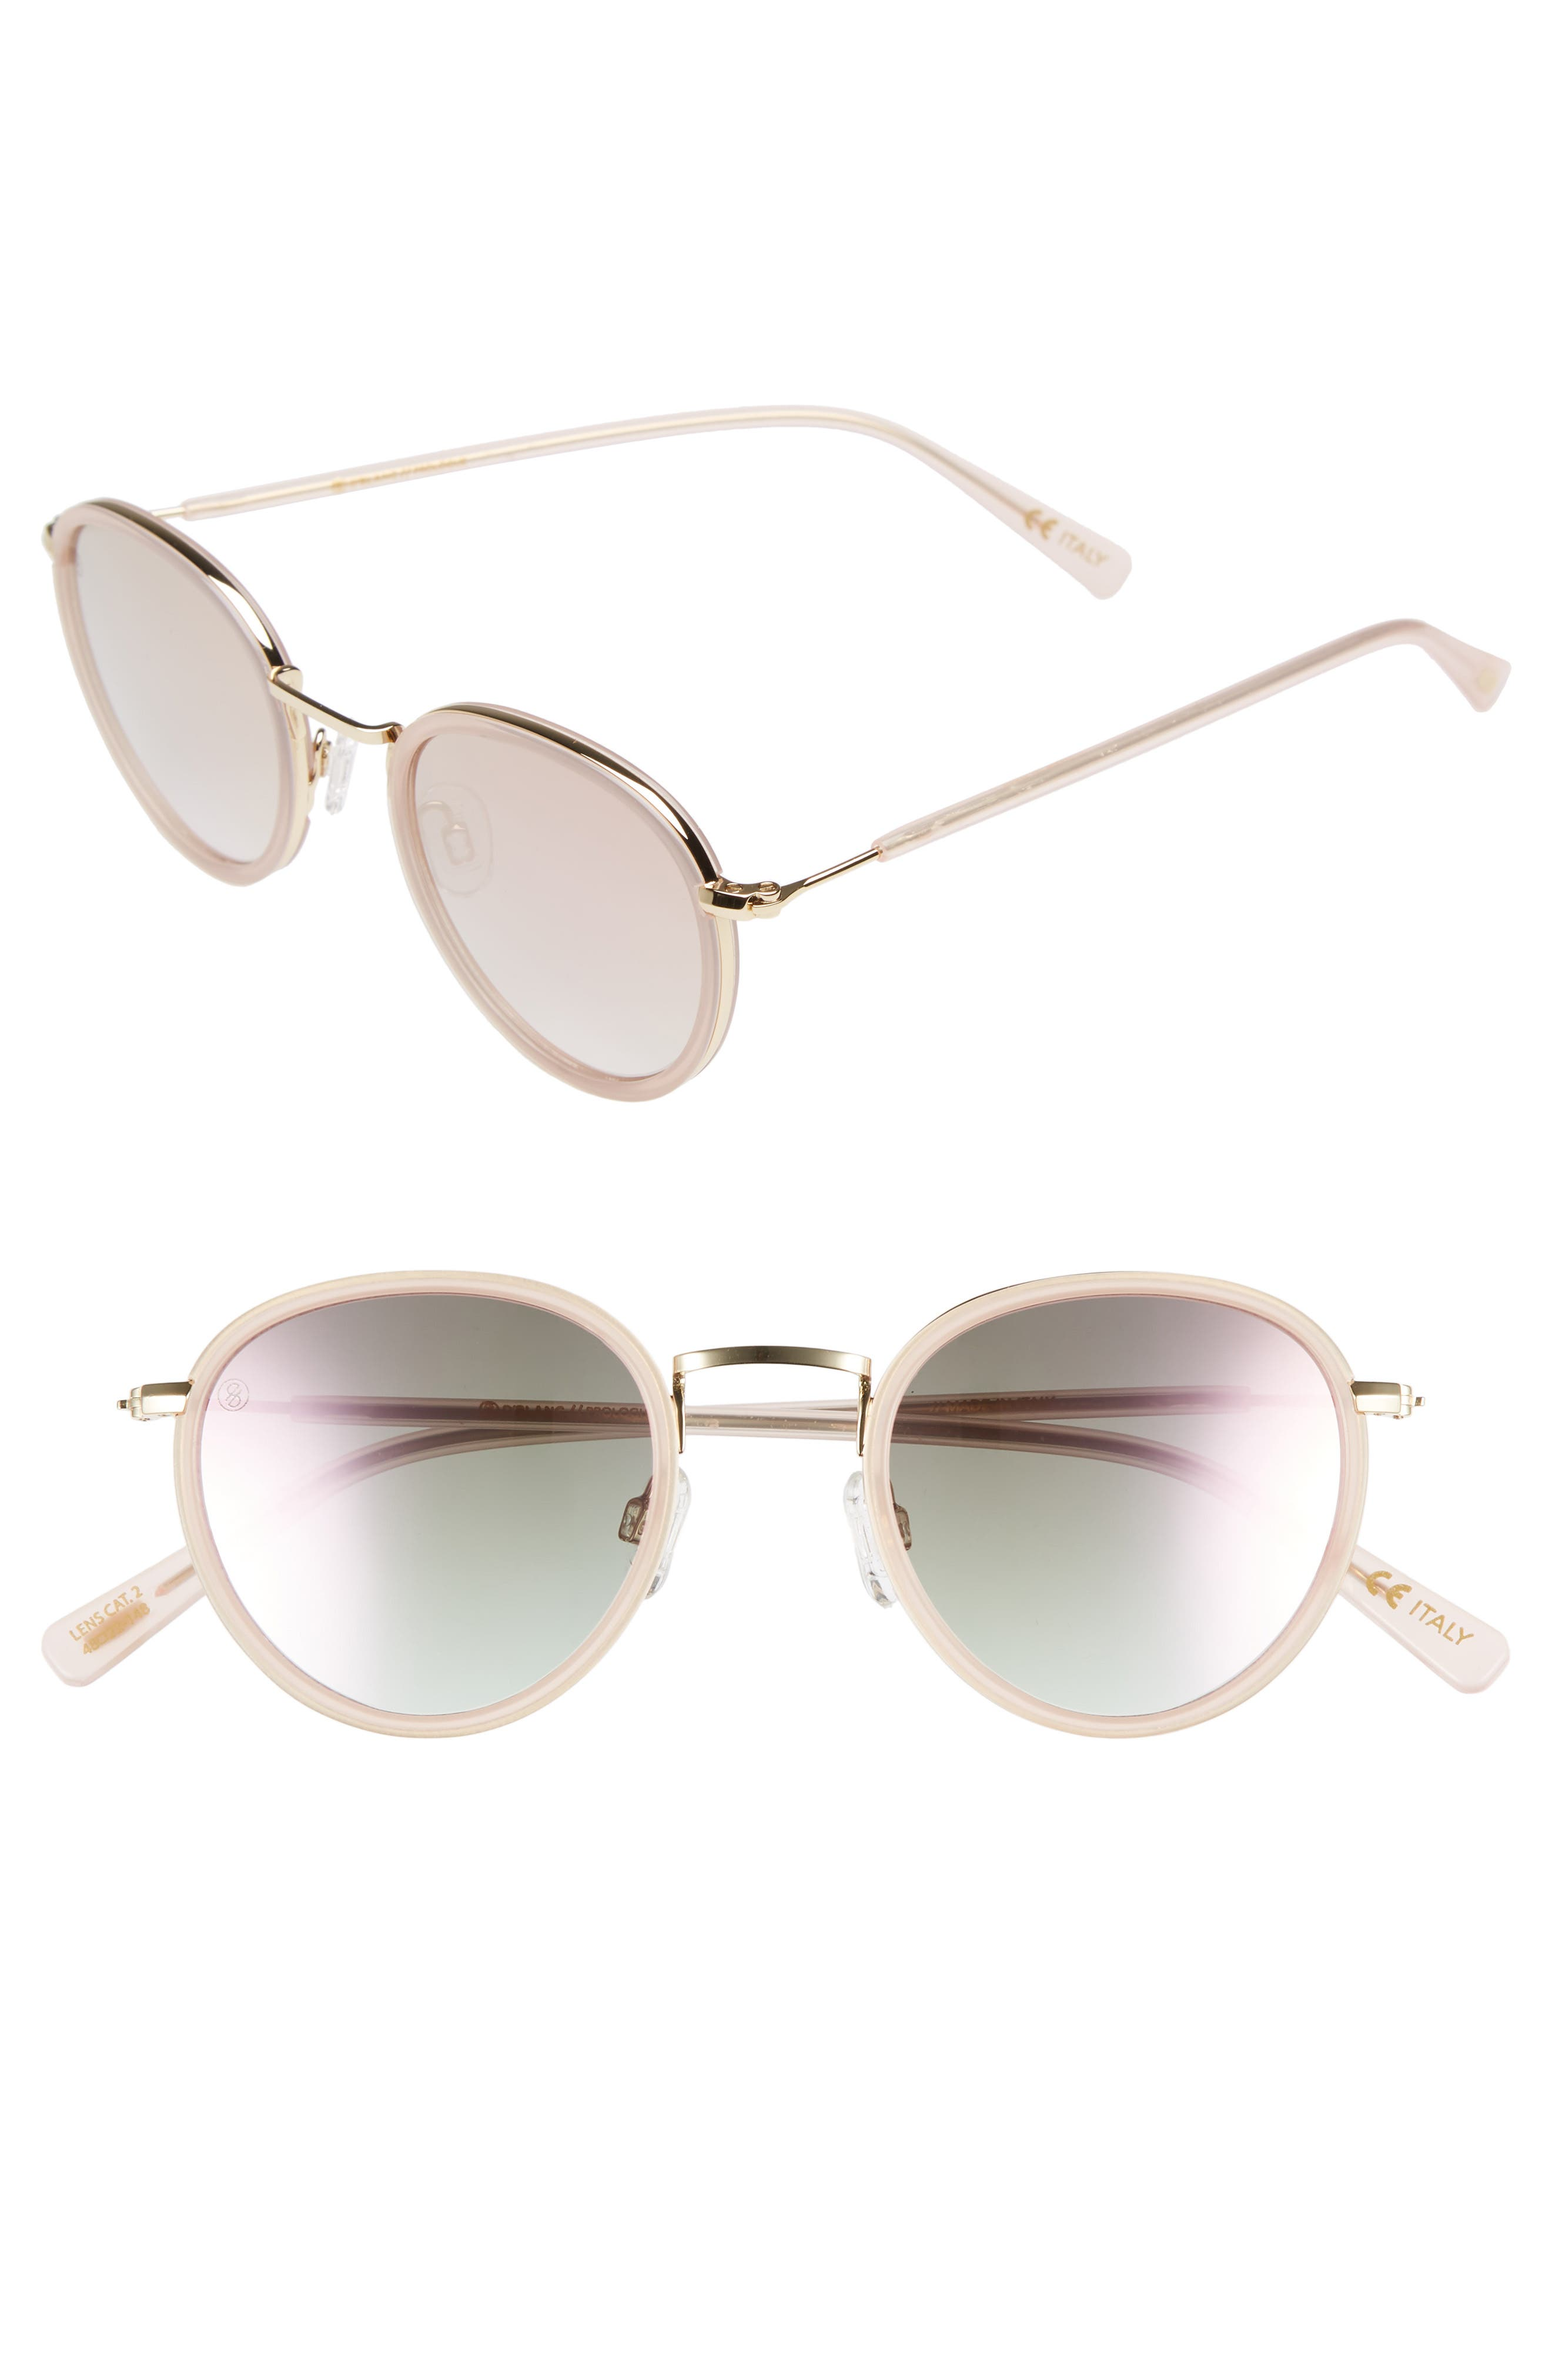 D'BLANC Prologue 48mm Round Sunglasses,                             Main thumbnail 1, color,                             Blush/ Rose Flash